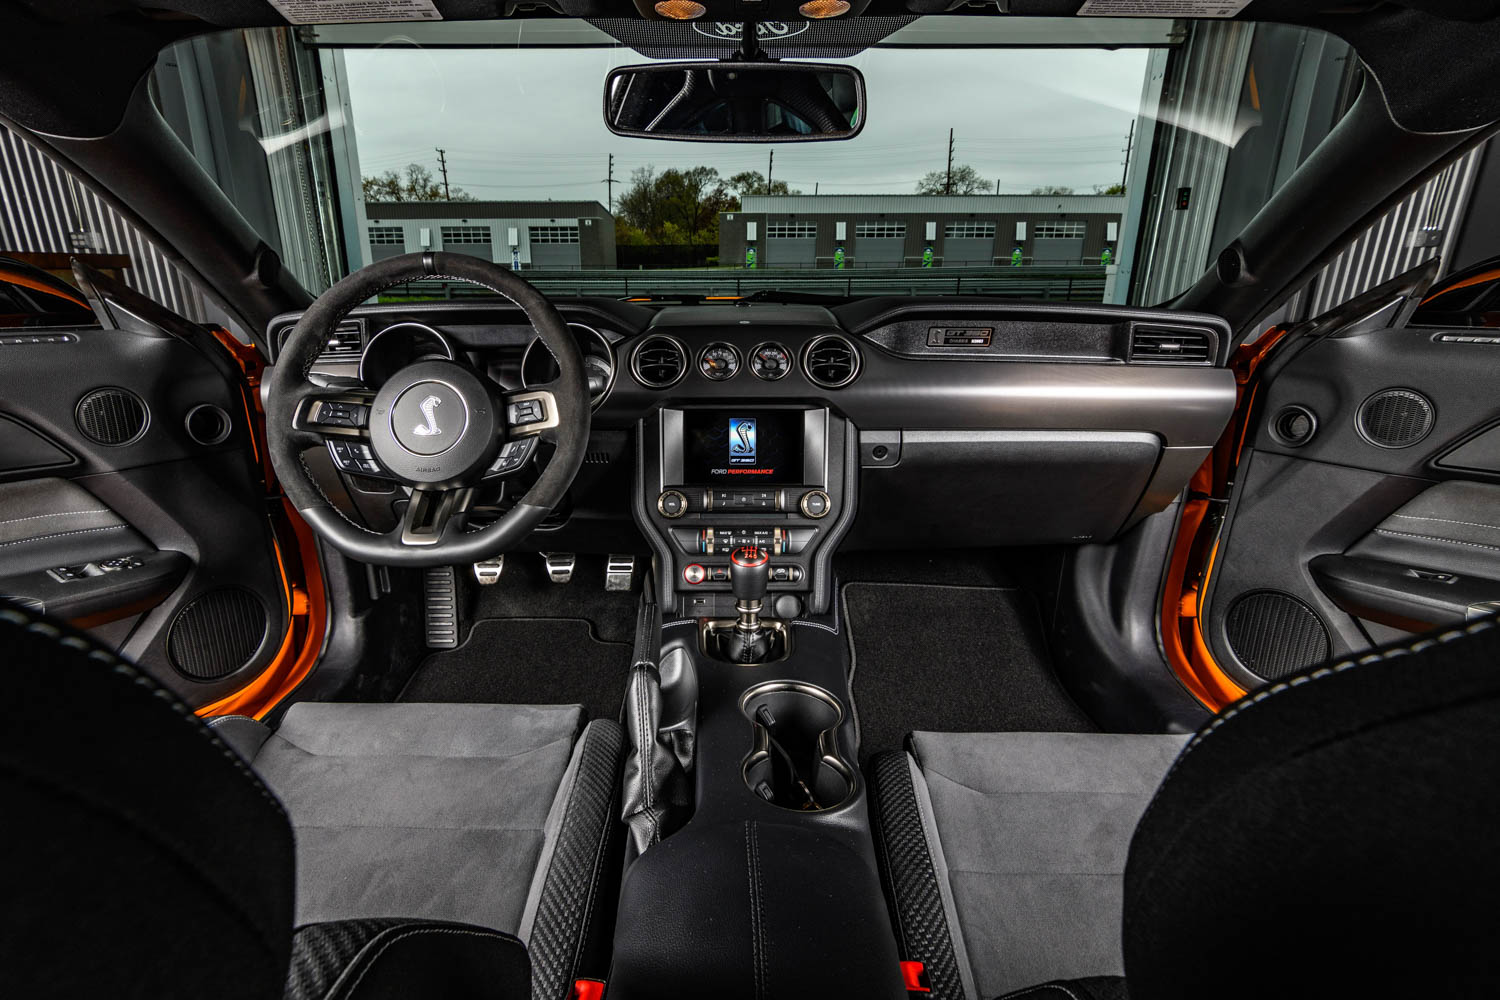 2019 Ford Mustang Shelby GT350 interior